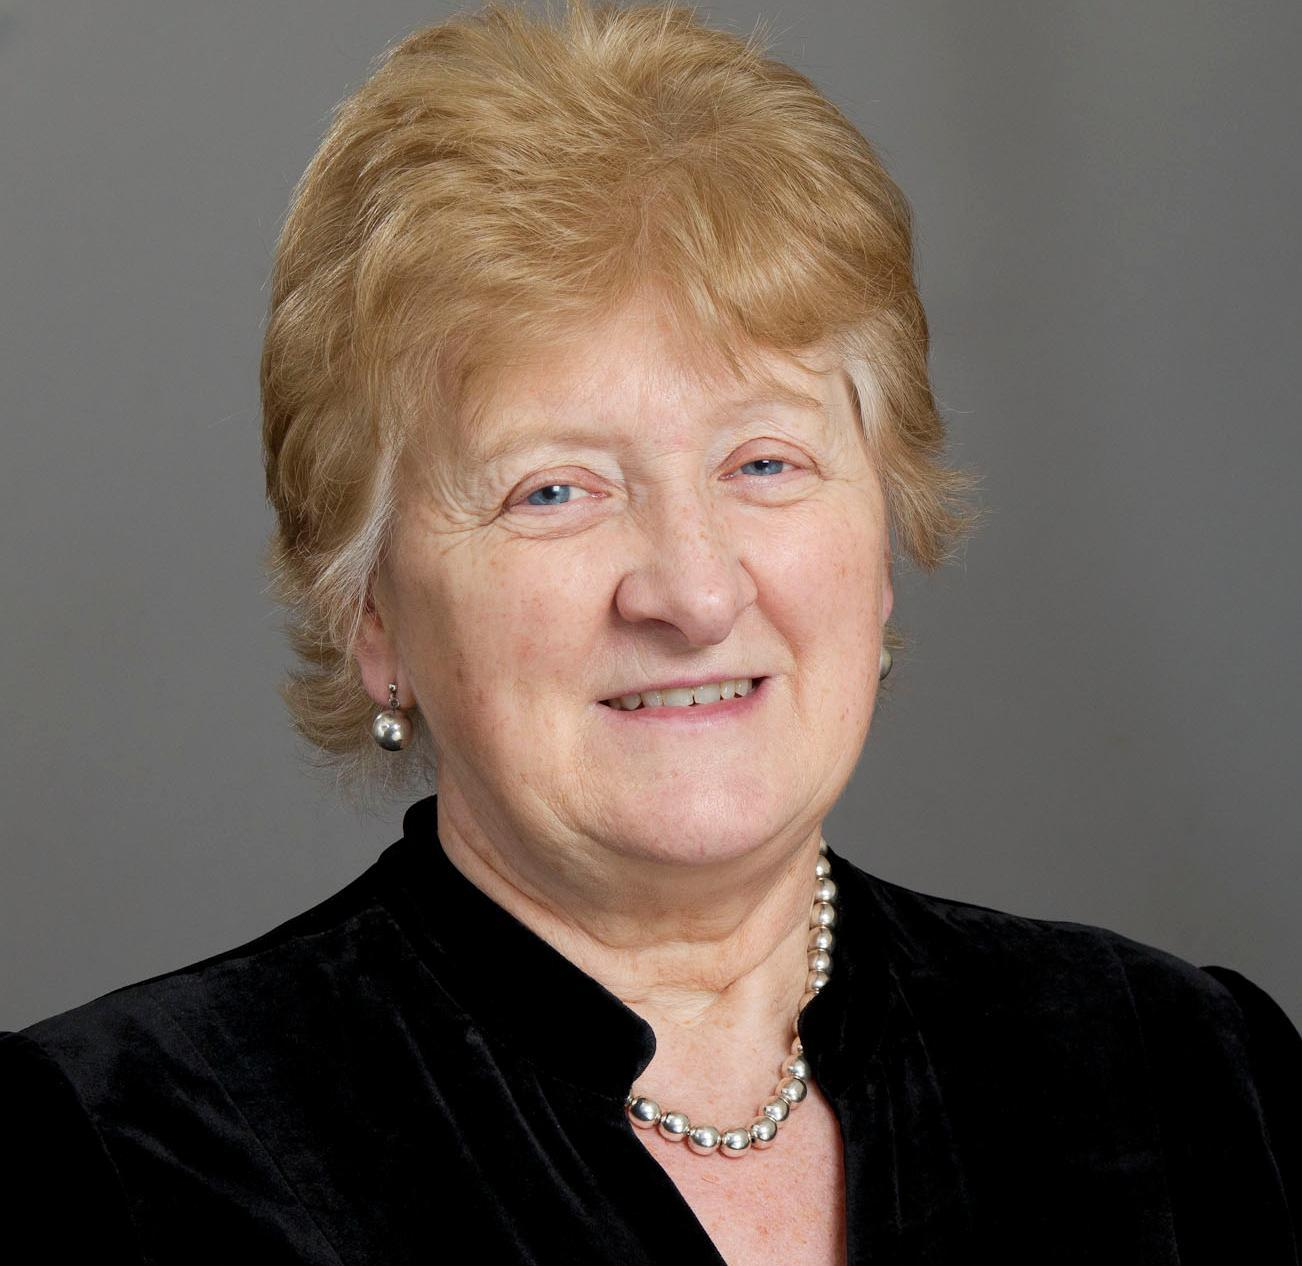 Professor Geraldine McCarthy appointed Chairperson of the South/South West Hospital Group